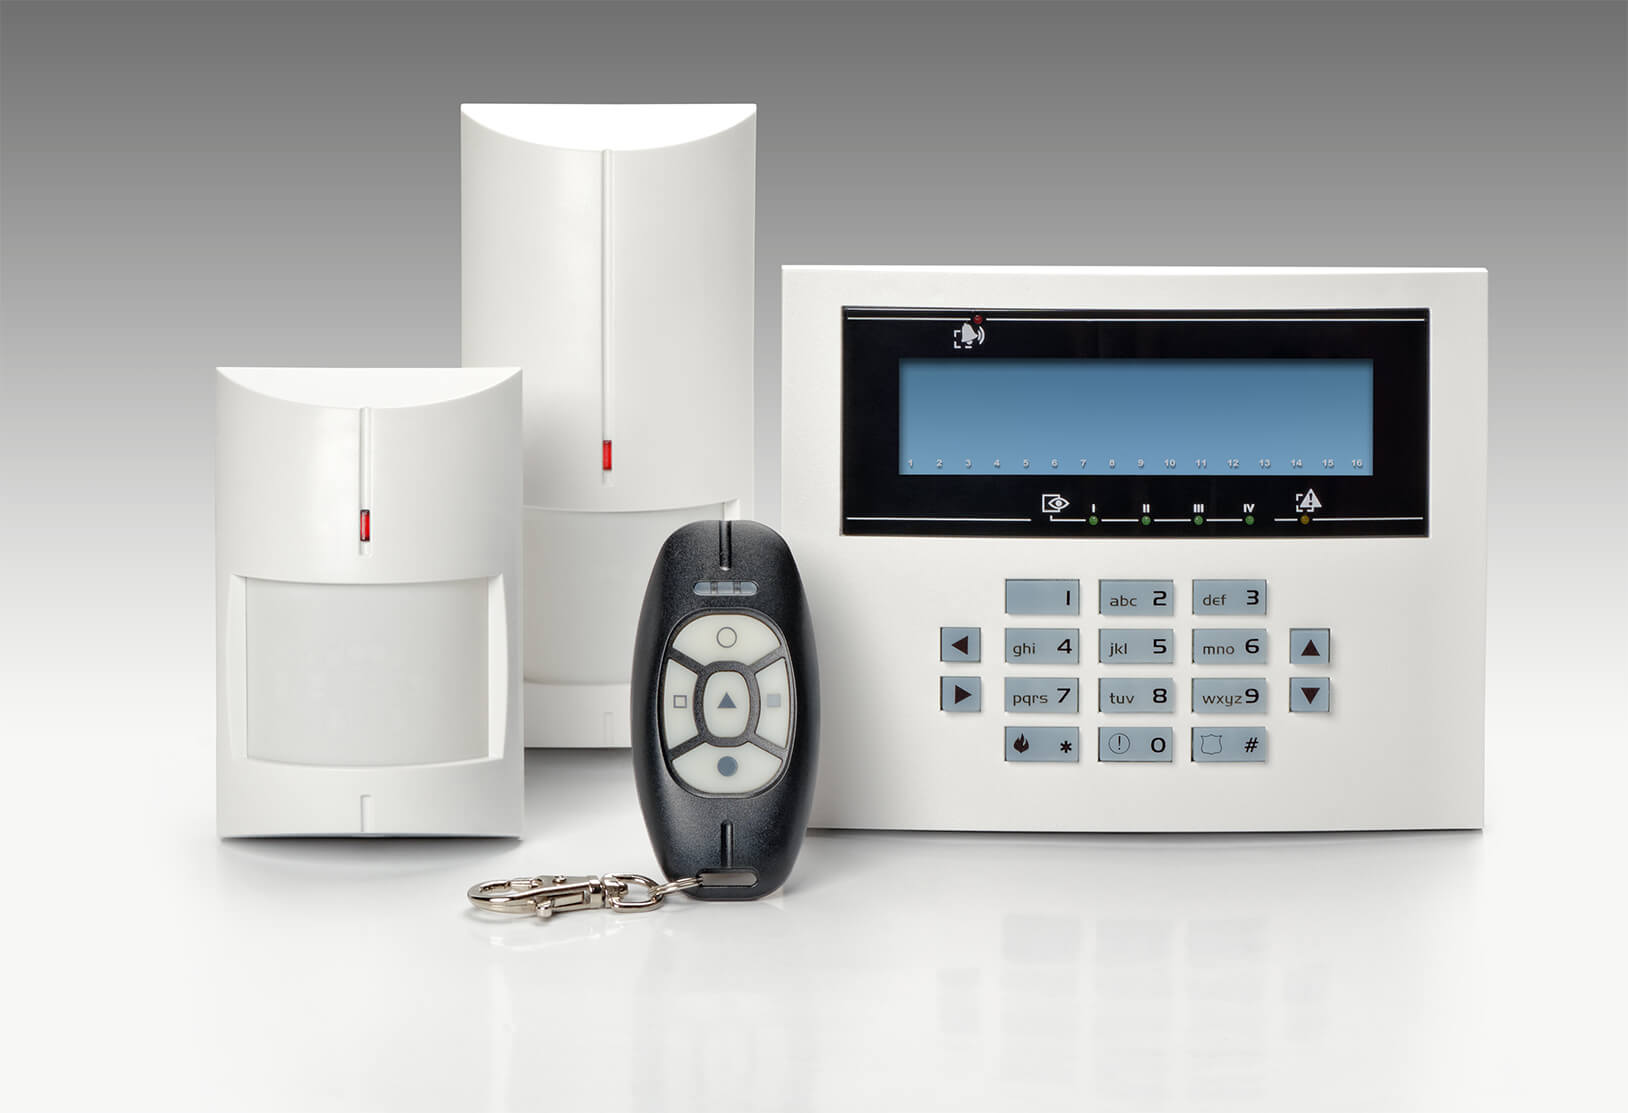 Business & Residential NSI / NACOSS Approved Burglar Alarms In South Norwood SE25 - Local South Norwood SE25 security company.Call 02078872244 - Dedicated to Safety & Security. Companies, shops and homes ..